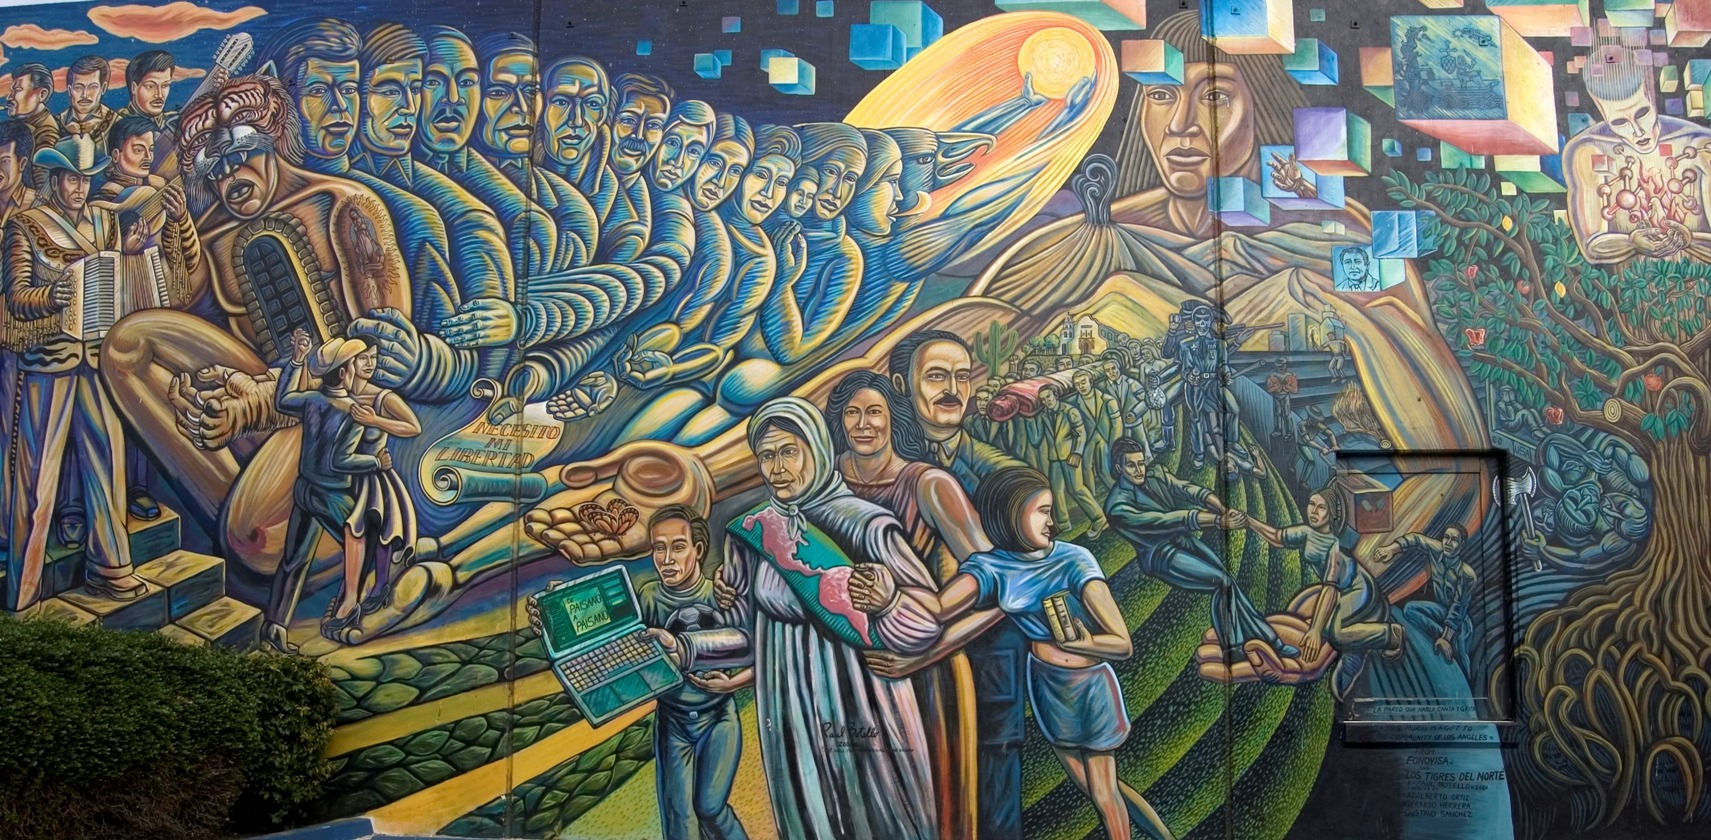 News release csula cal state l a los angeles csu for Mural decorativo pared